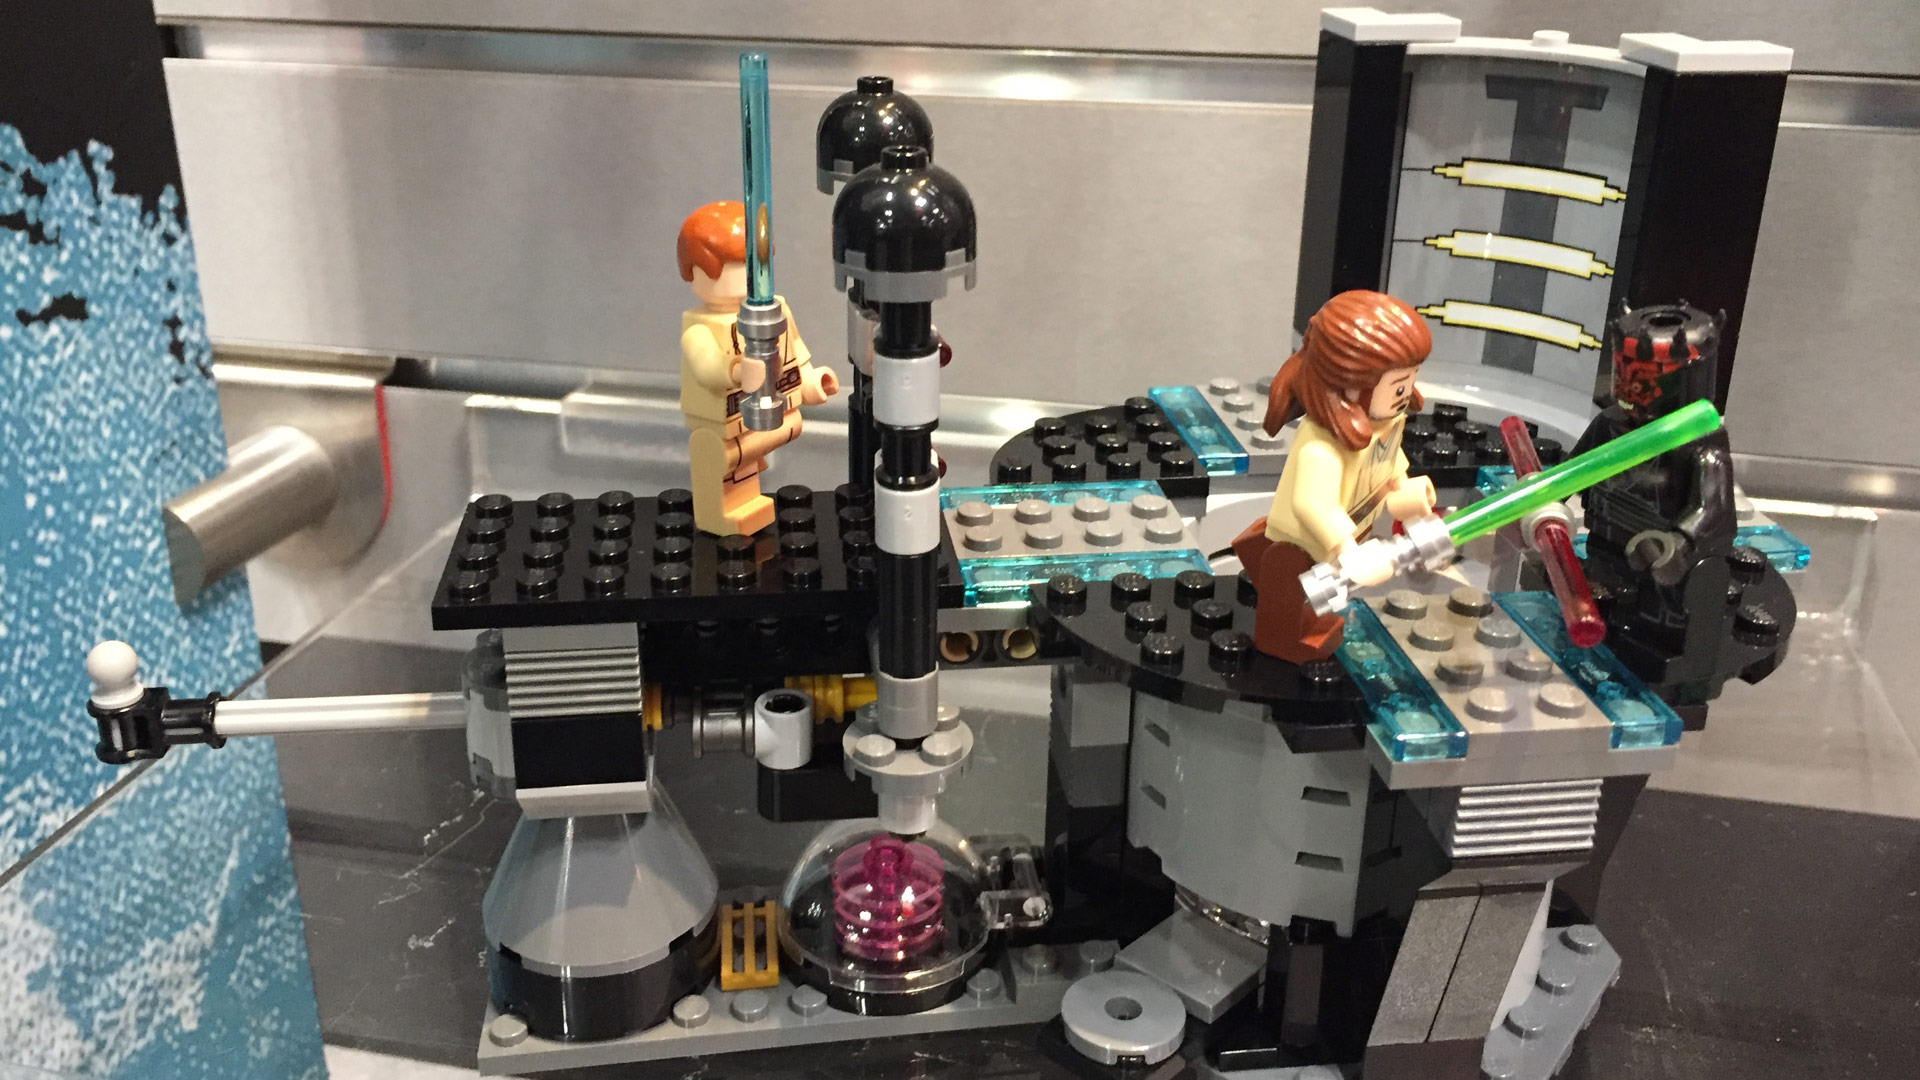 LEGO Star Wars Set 75169 Duel on Naboo at Toy Fair 2017